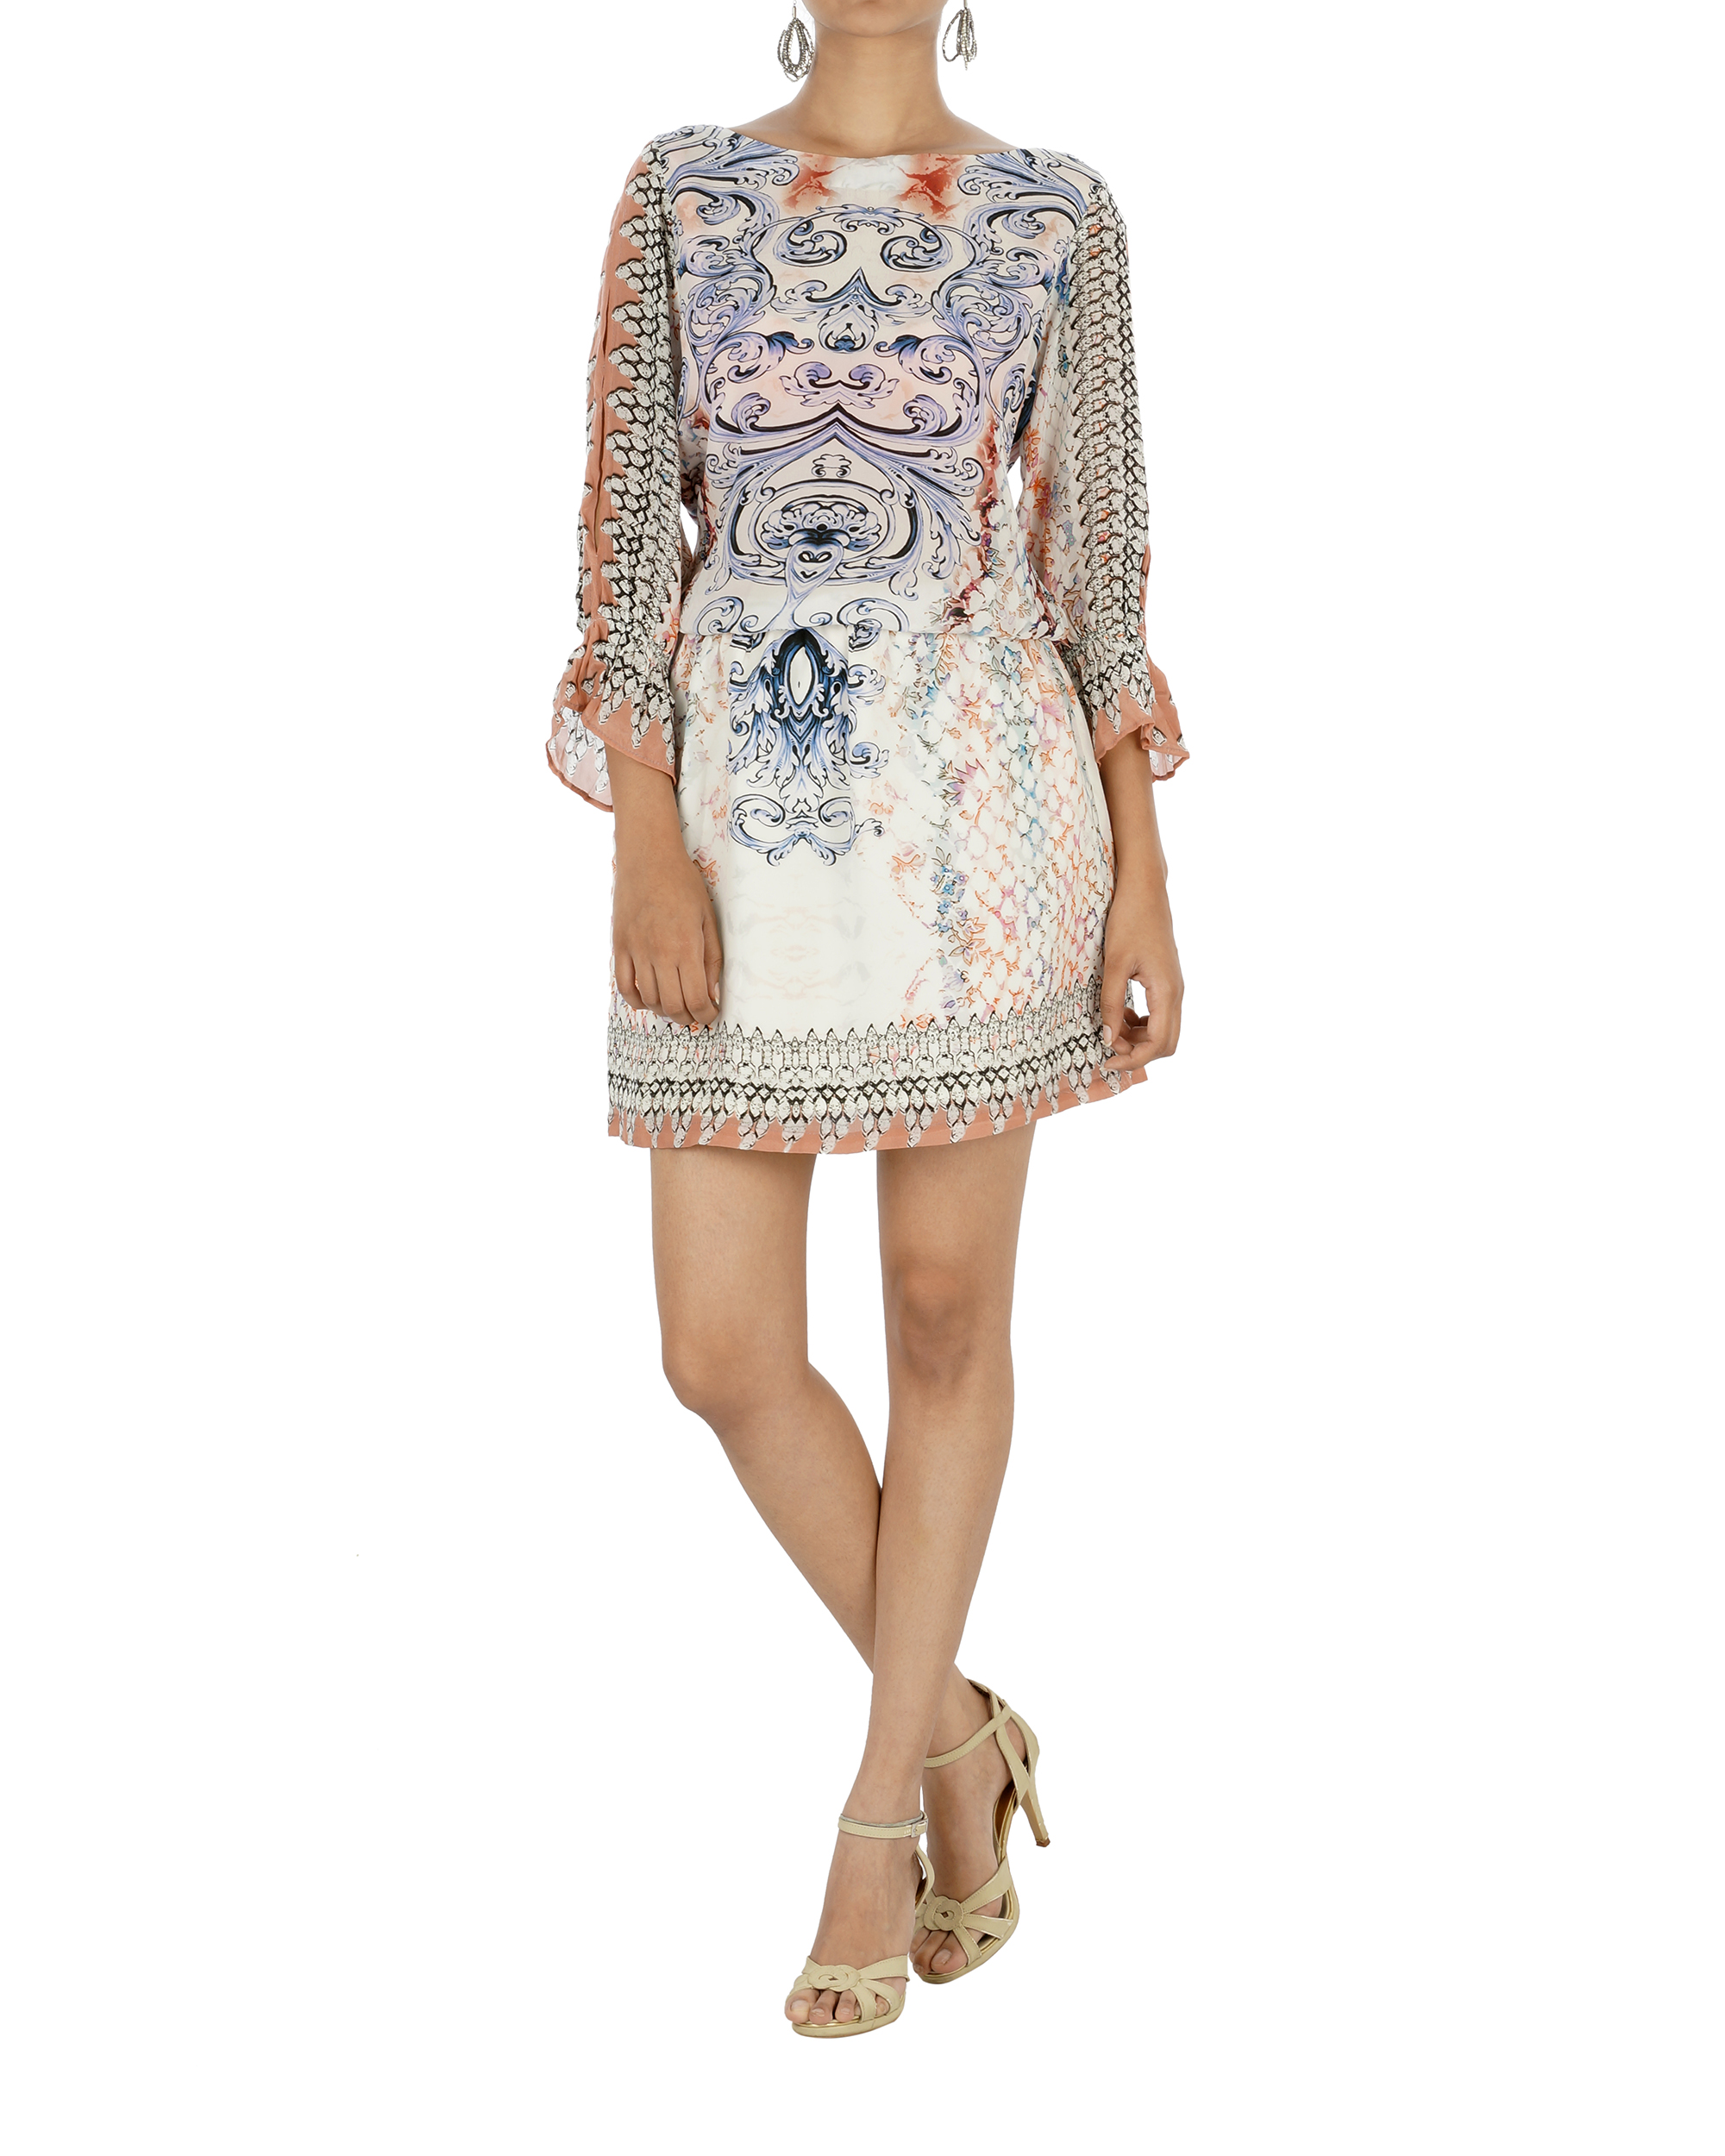 Ivory and navy blue printed dress